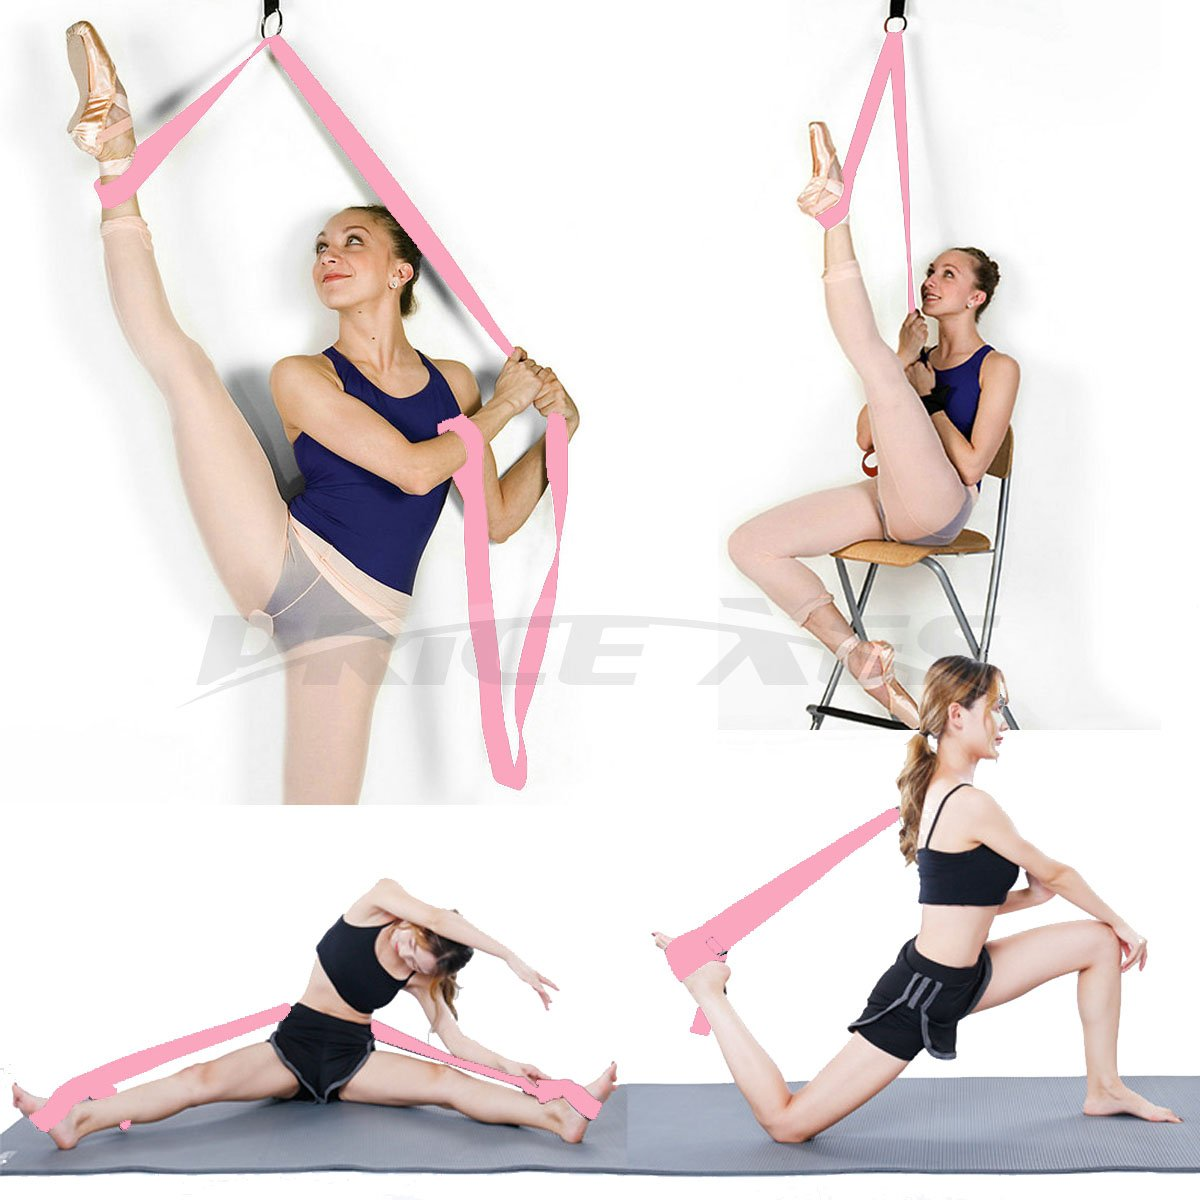 Price Xes Leg Ballet Yoga Stretcher, Door Attachment Get More Flexible, Flexibility & Stretching Leg Straps - Great for Cheer Dance Gymnastics or Any ...